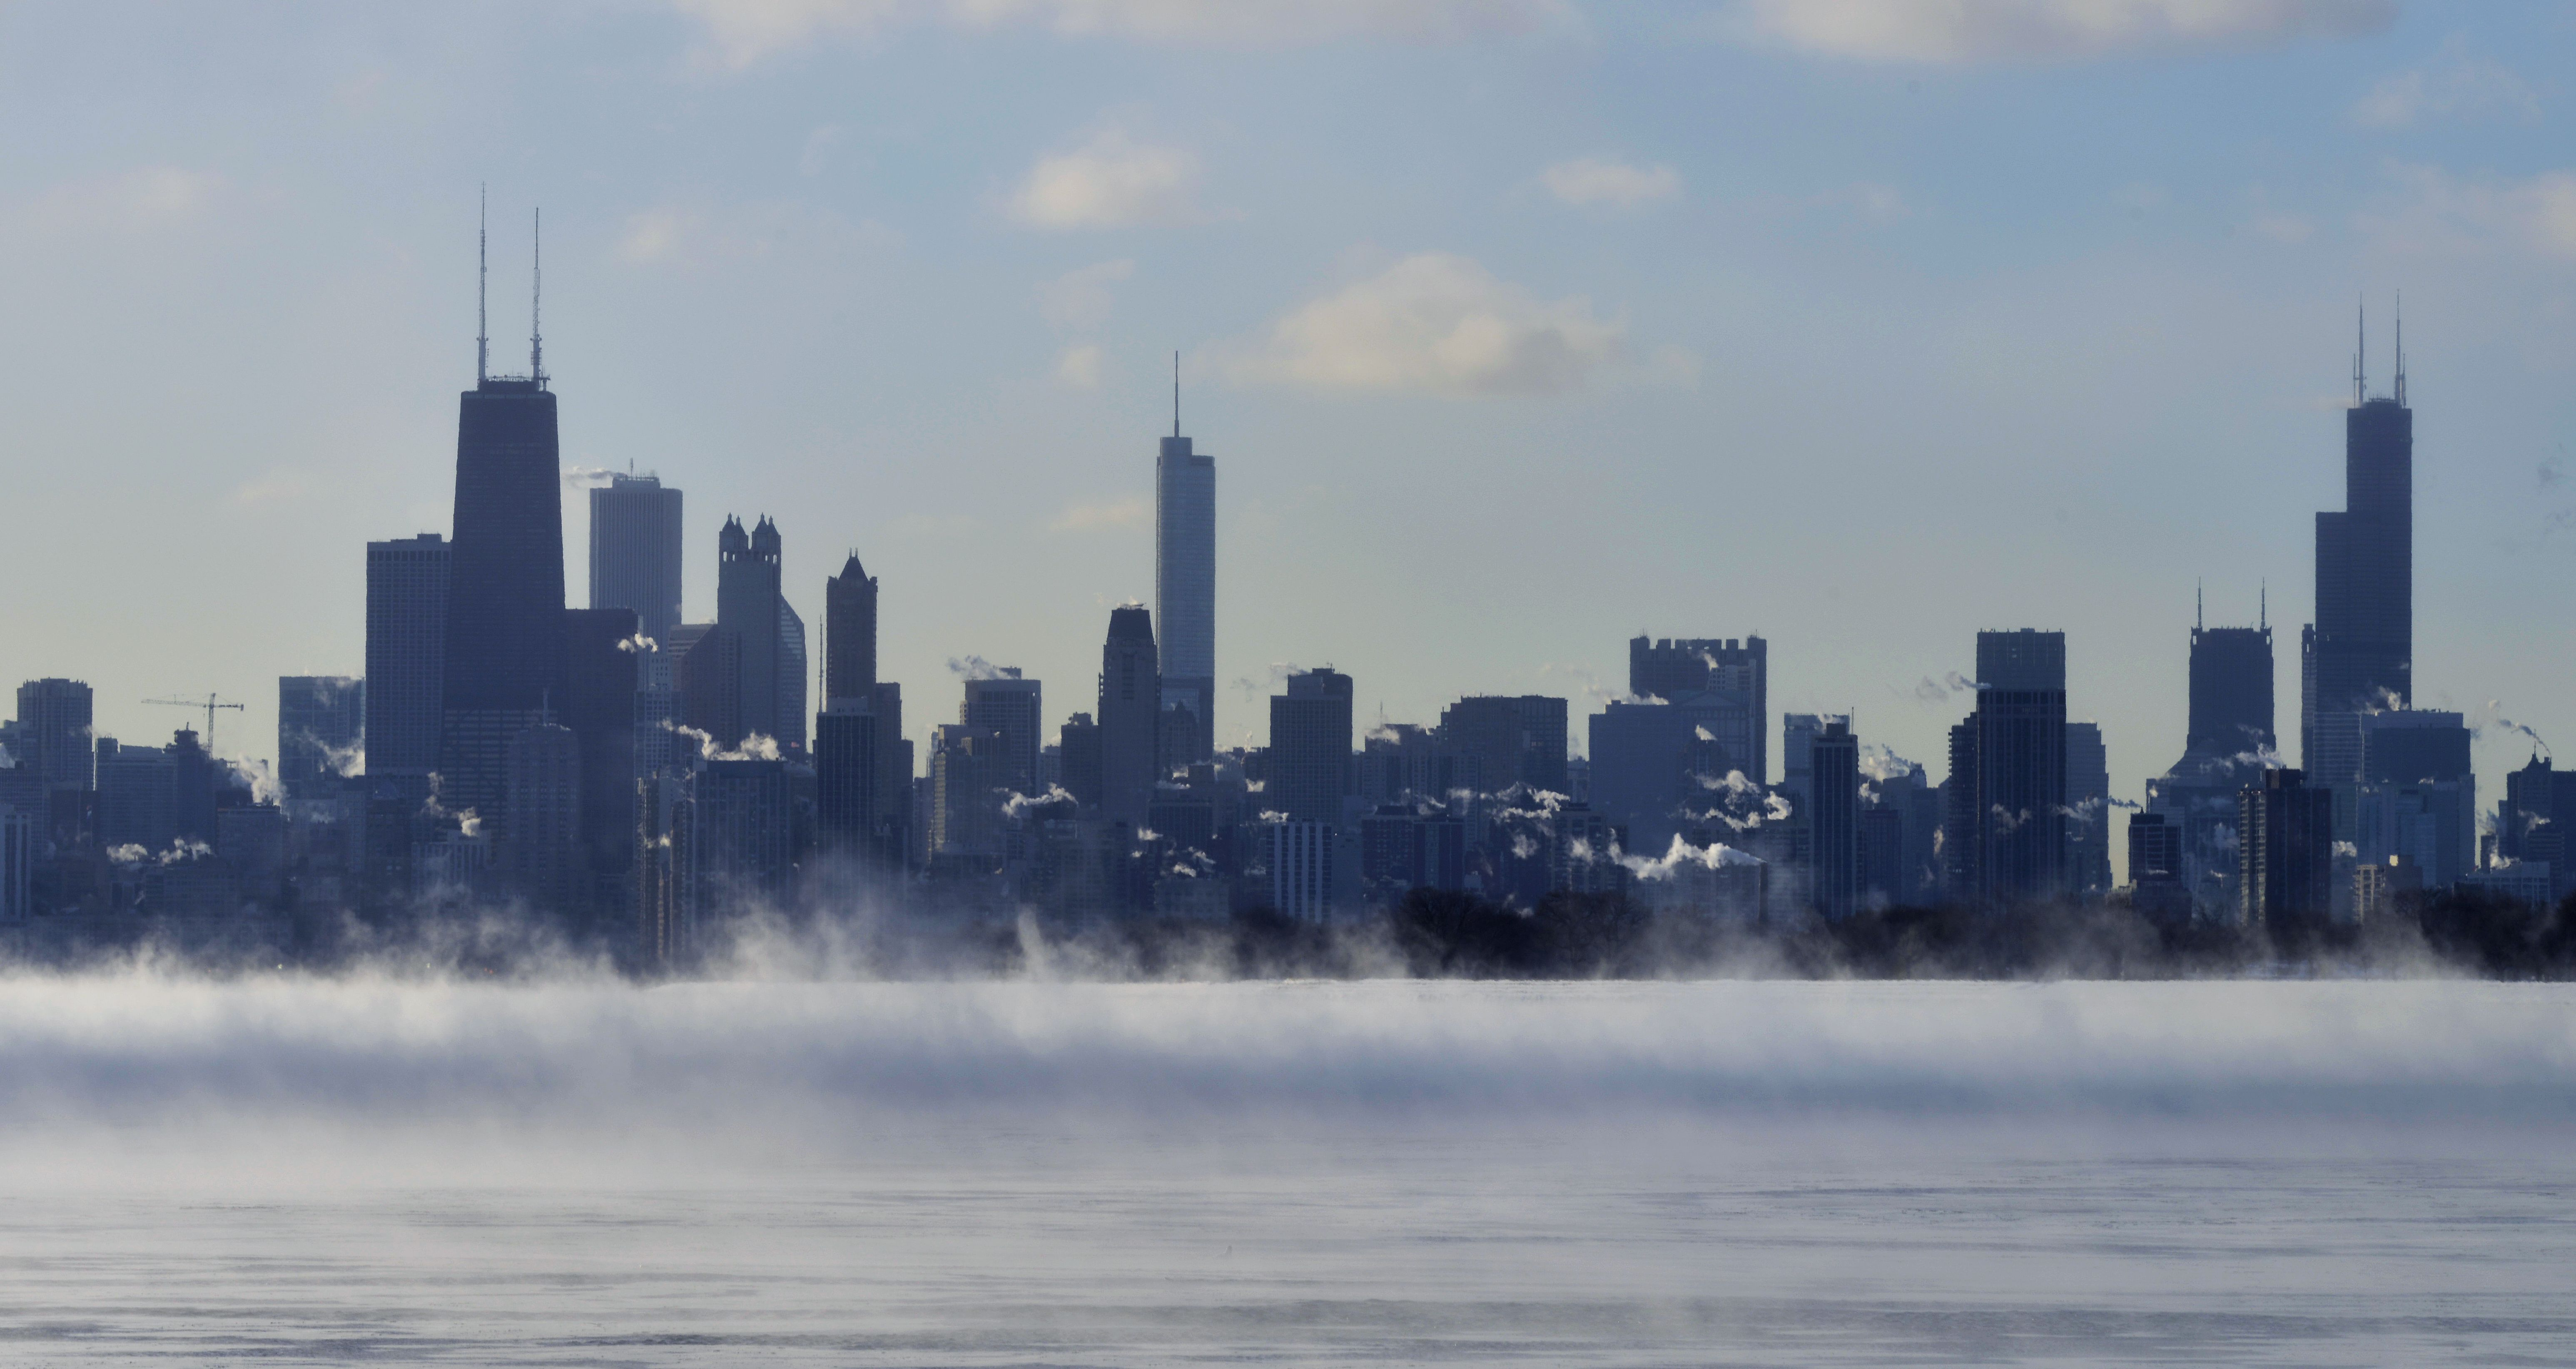 Chicago Skyline Winter HD Picture AmazingPictcom   Wallpapers 6186x3288